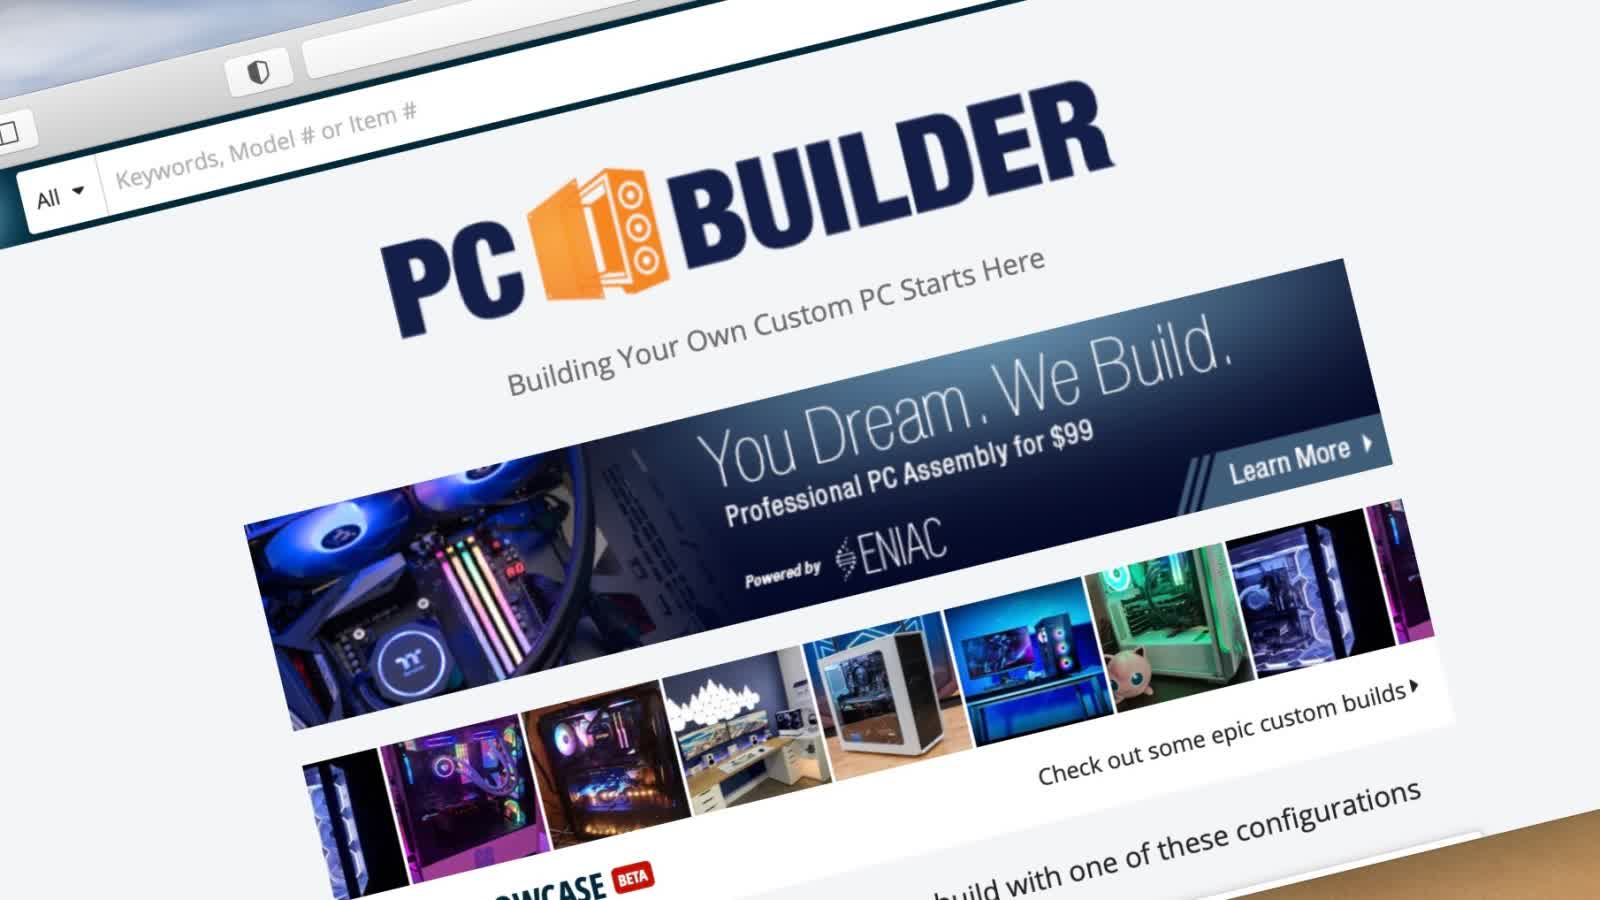 Newegg launches PC building service for an additional $99